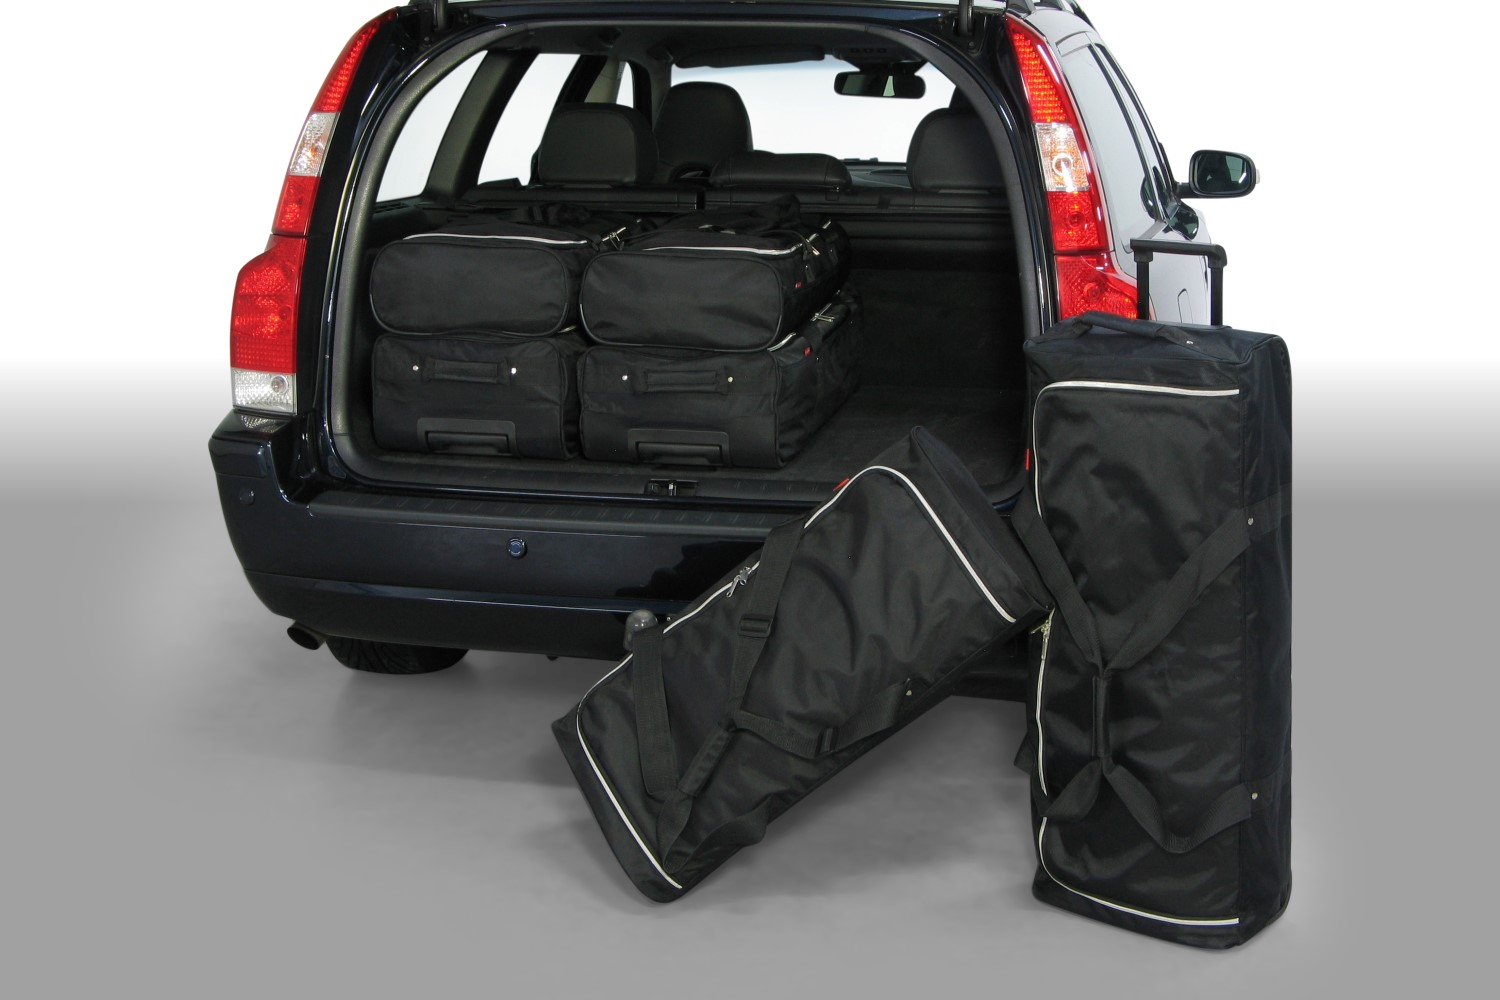 Volvo V70 (P26) 2001-2007 Car-Bags.com travel bag set (1)